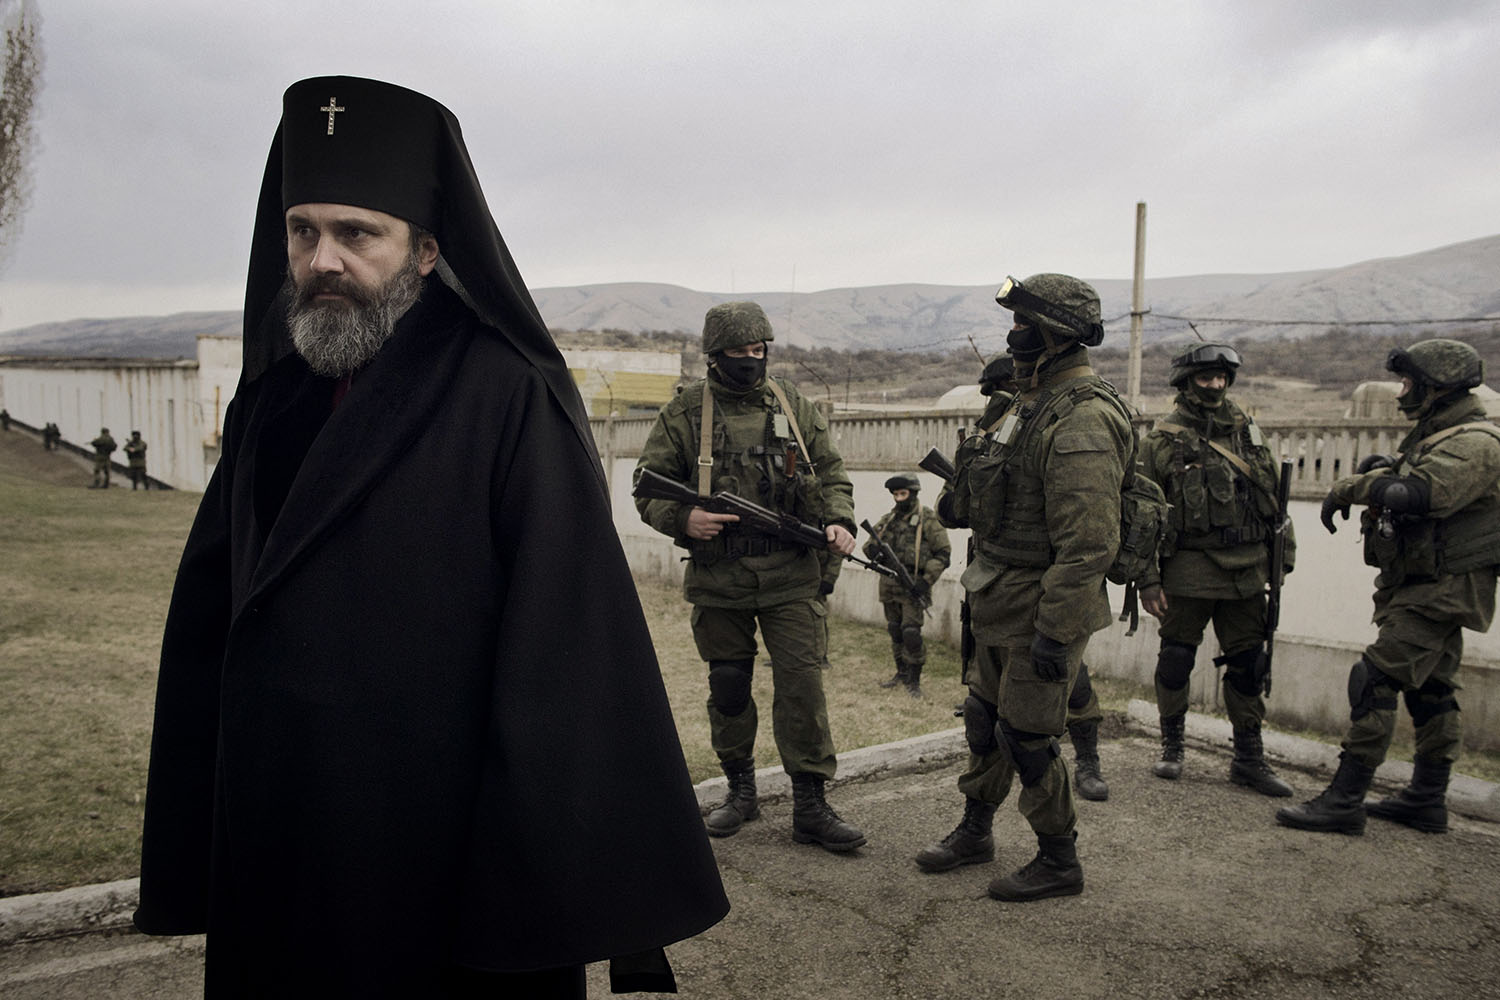 Mar. 2, 2014. Archbishop Kliment of Crimea stands next to Russian soldiers, who are not wearing any identifying markers on their uniforms, outside the blocked Ukrainian military base  in the village of Perevalnoye. The Archbishop came to support Ukrainians and acted as a human shield                       from a possible Russian attack.